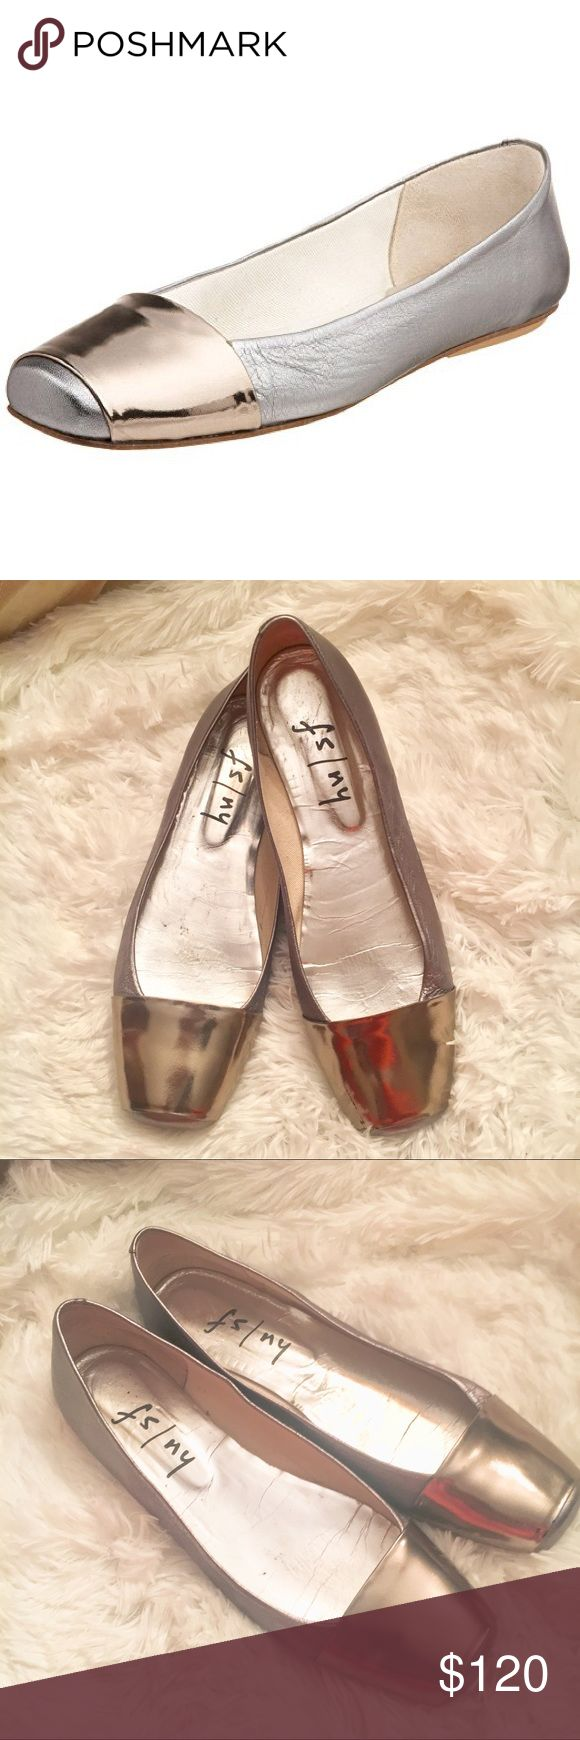 "French Sole FS/NY Women's Via Flat Leather Leather sole Heel measures approximately 1/8"" A wide band of bright metallic leather lends a futuristic vibe to this square-toe ballet flat.  Good Condition few minor flaws see picture FS NY Shoes Flats & Loafers"